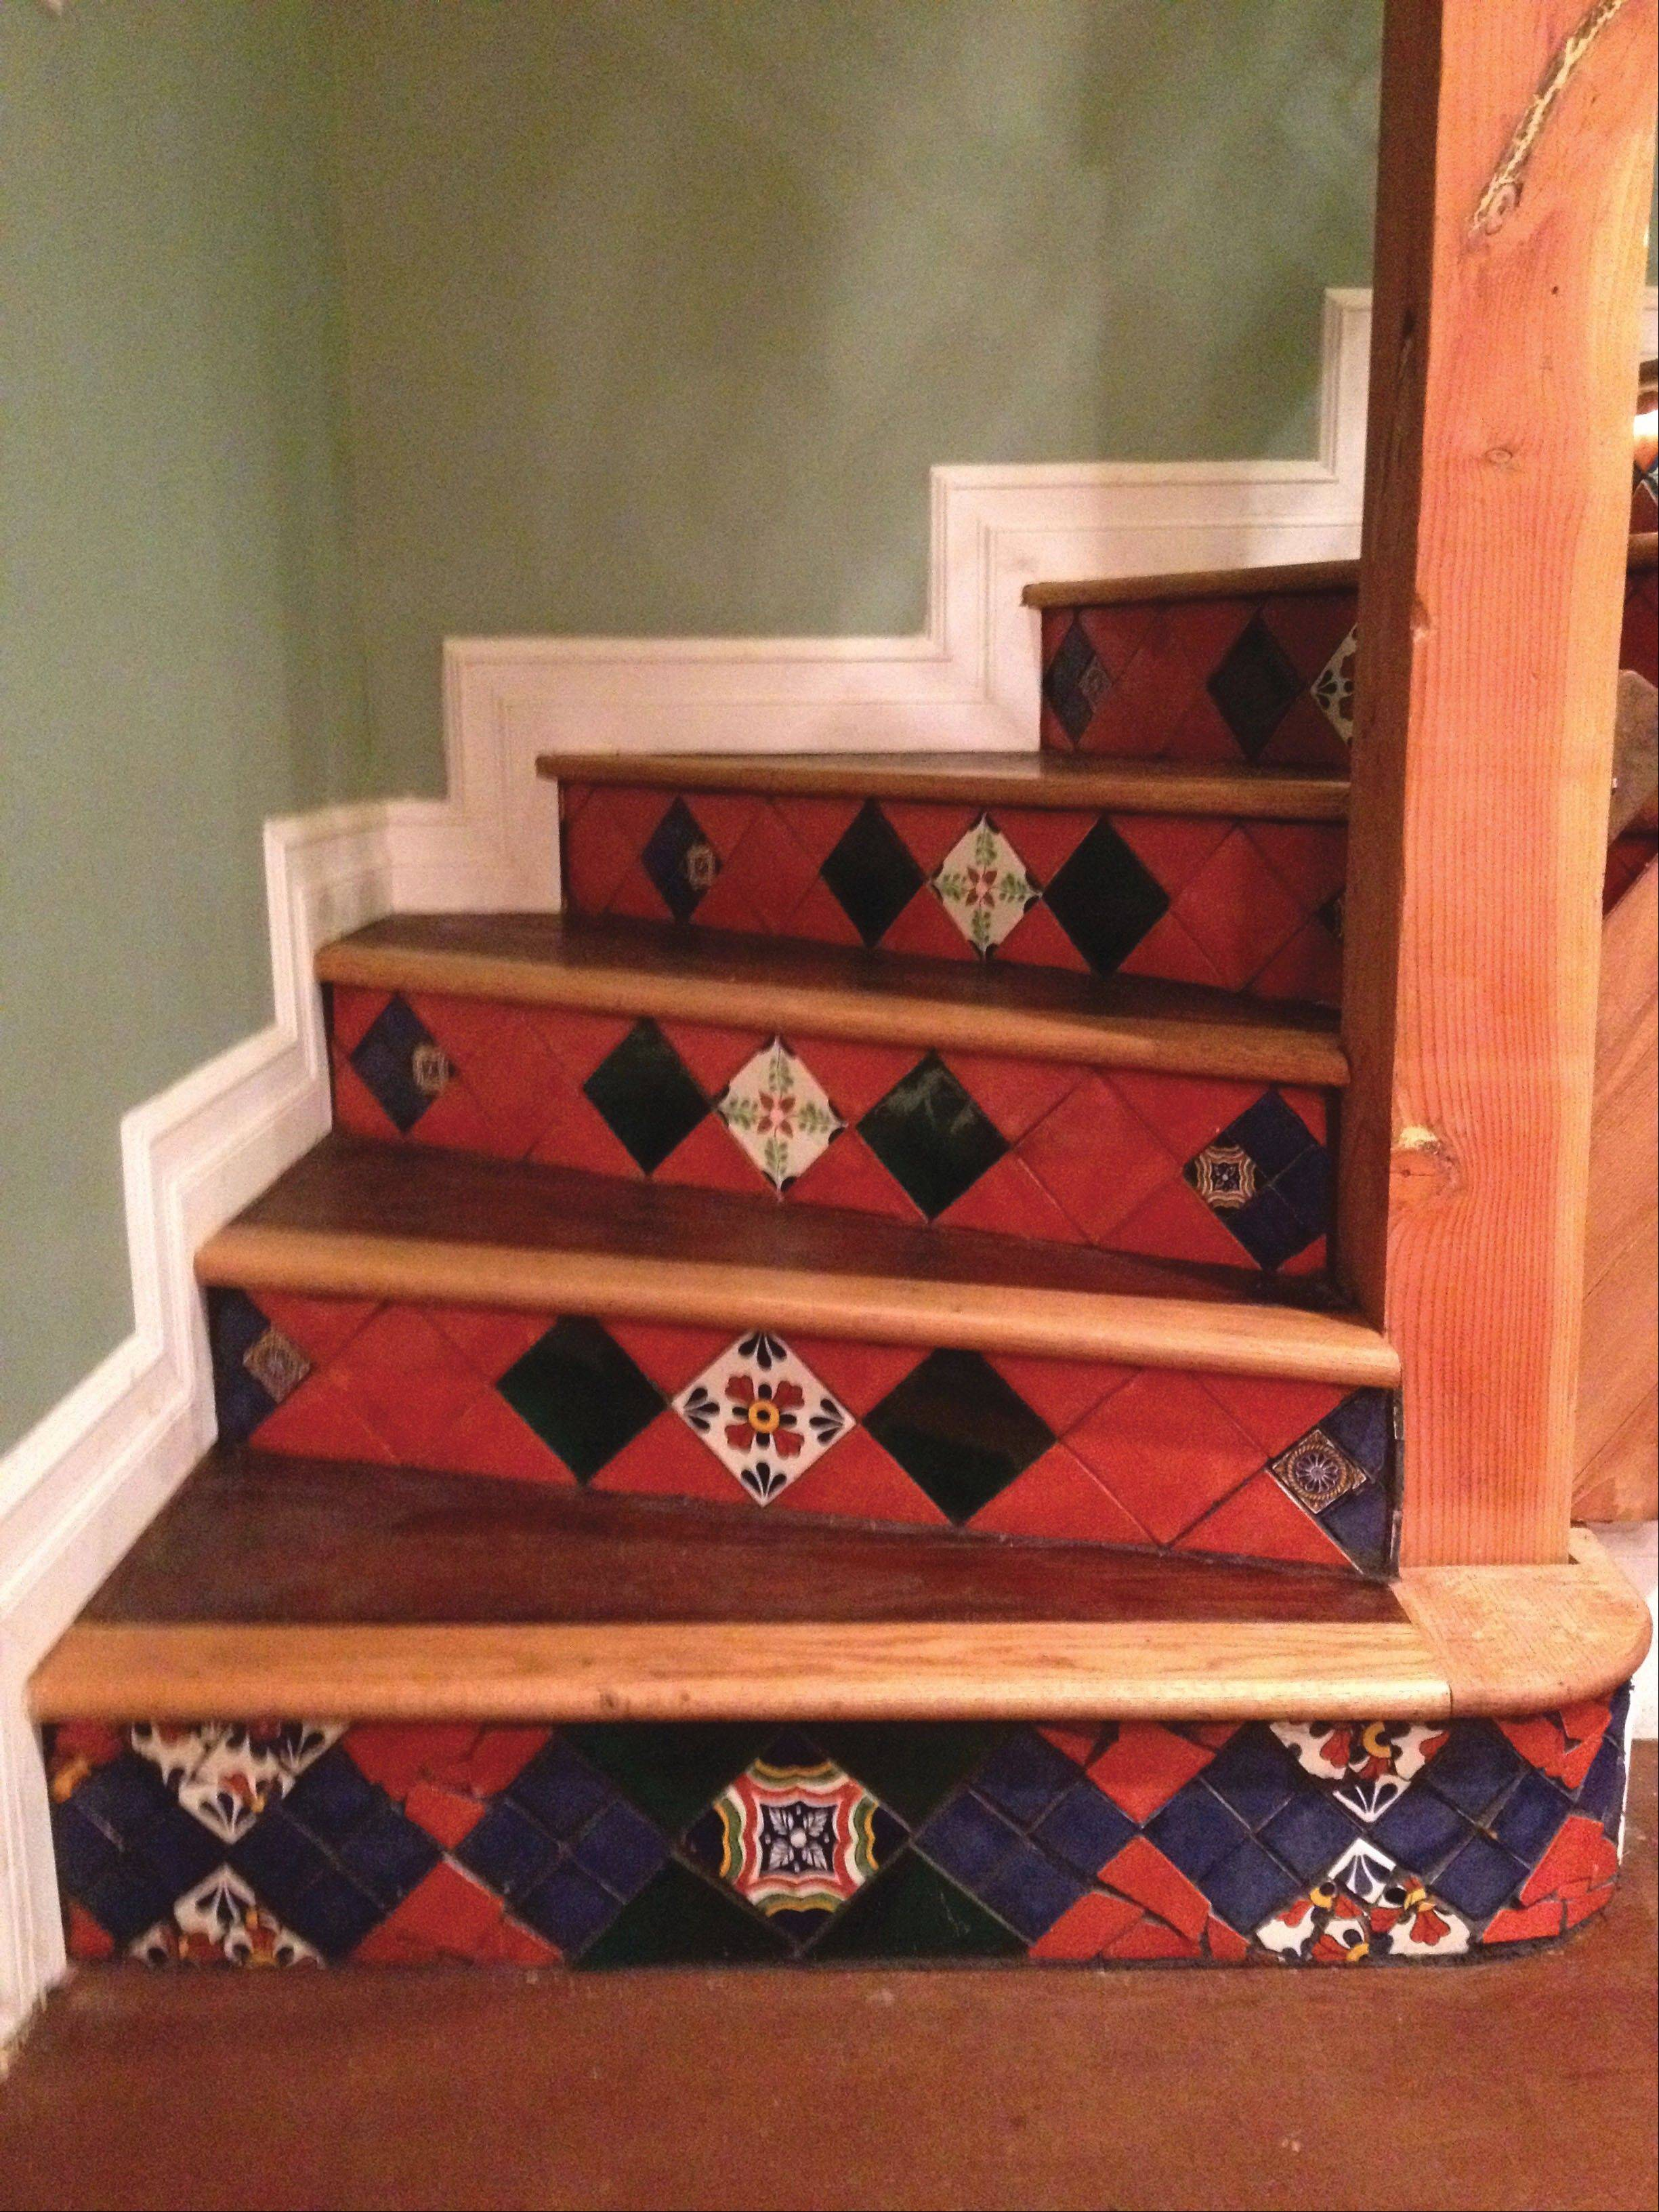 Mexican tile on stair risers make for an artistic project.